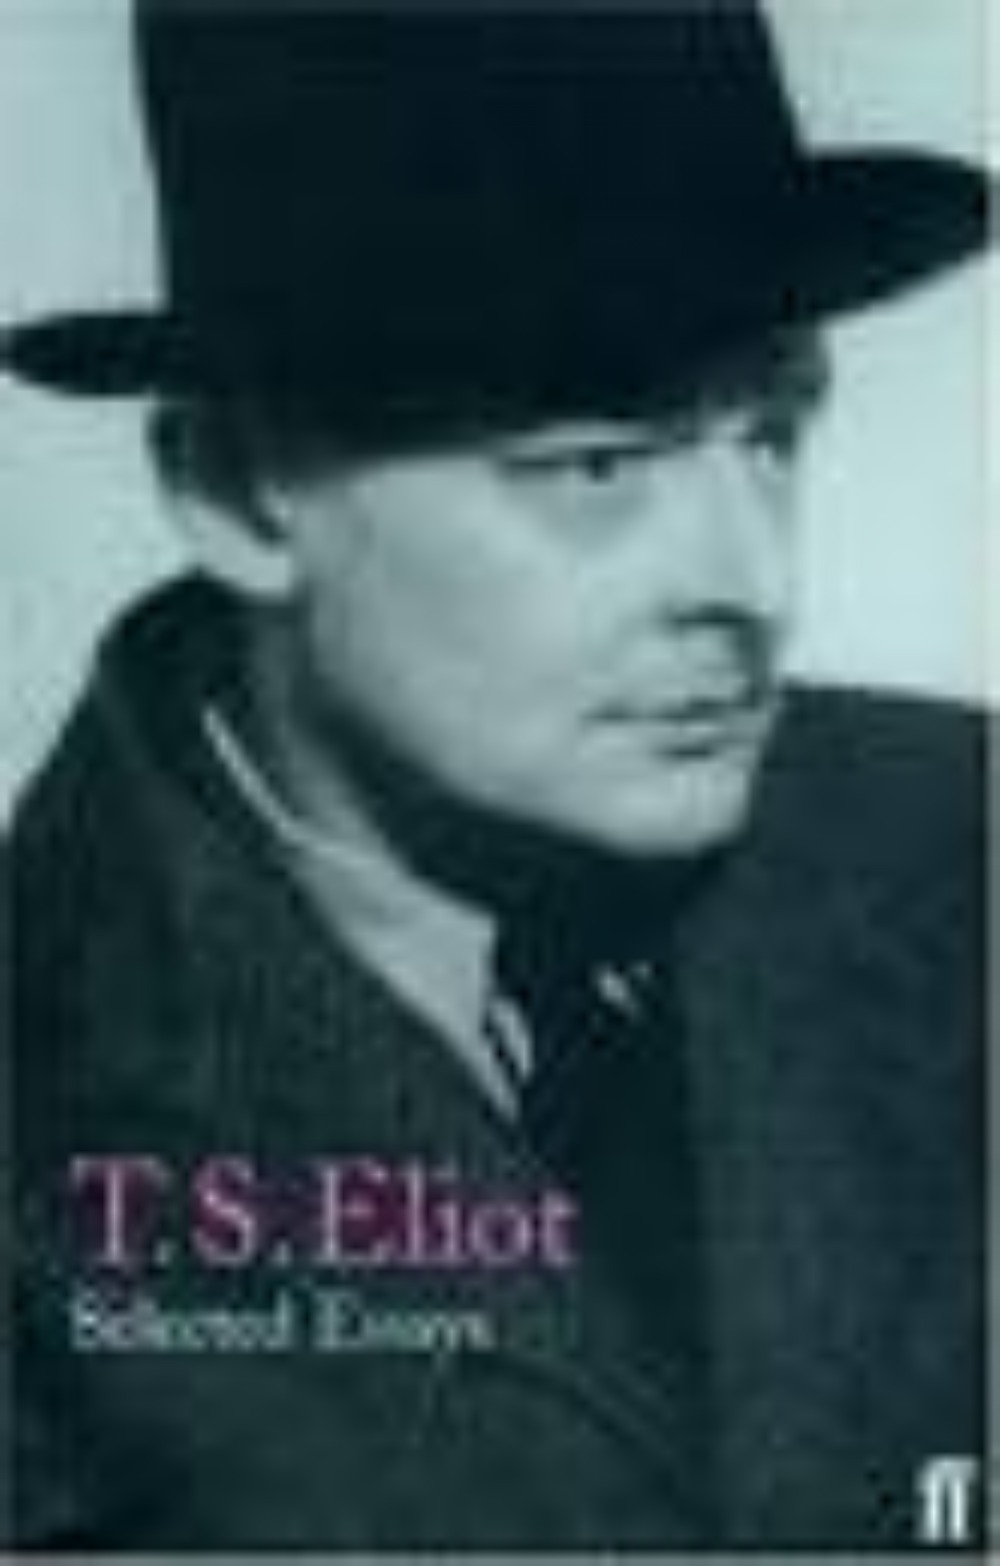 """t s eliot s the love song Ts eliot's """"the love song of j alfred prufrock"""" -- commonly referred to simply as """"prufrock"""" -- marked a monumental literary shift between 19th-century."""